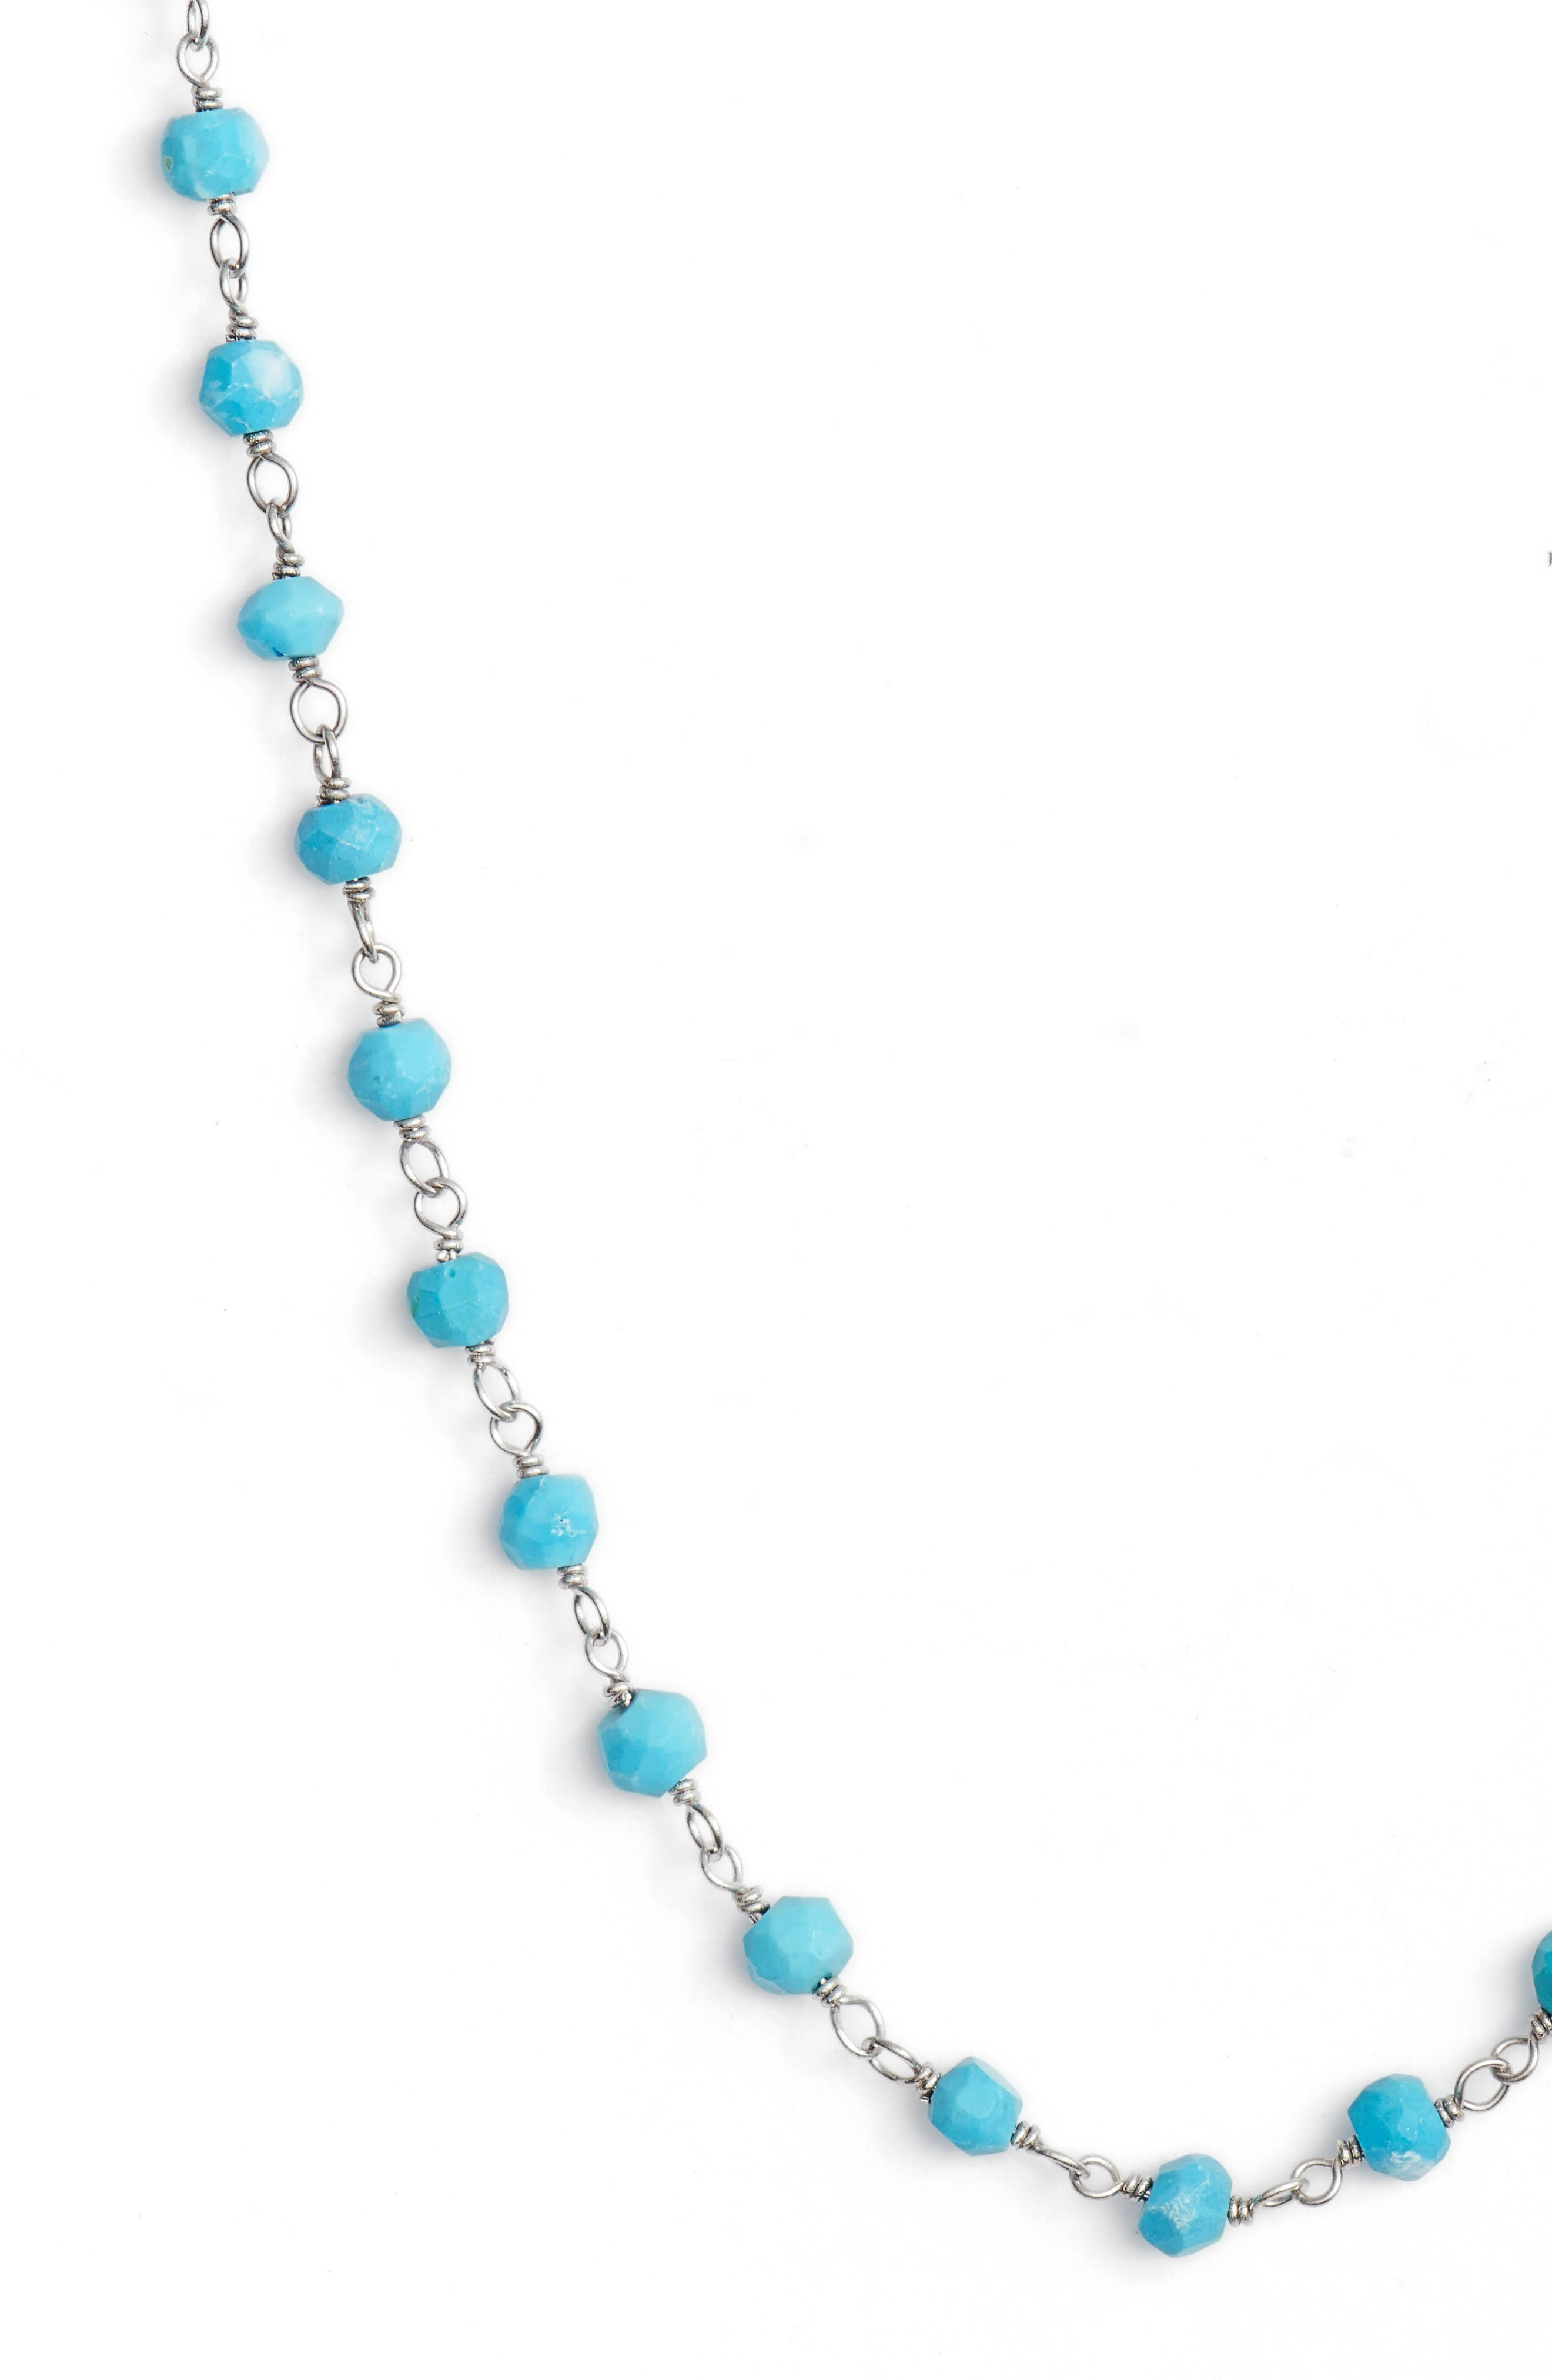 Beaded Wrap Necklace,                             Alternate thumbnail 3, color,                             SILVER/ TURQUOISE